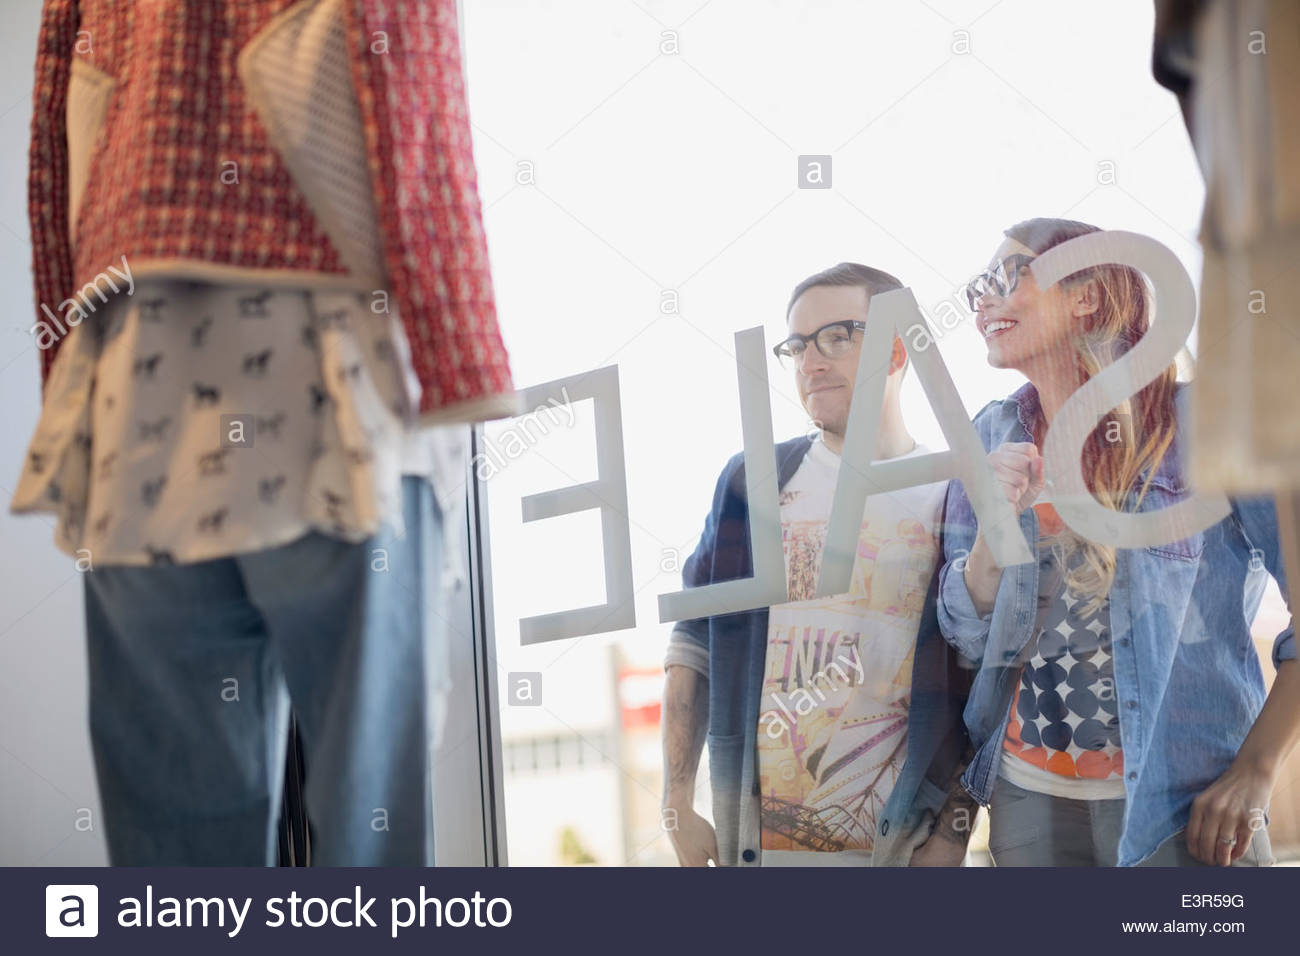 Hipster couple window shopping at storefront - Stock Image